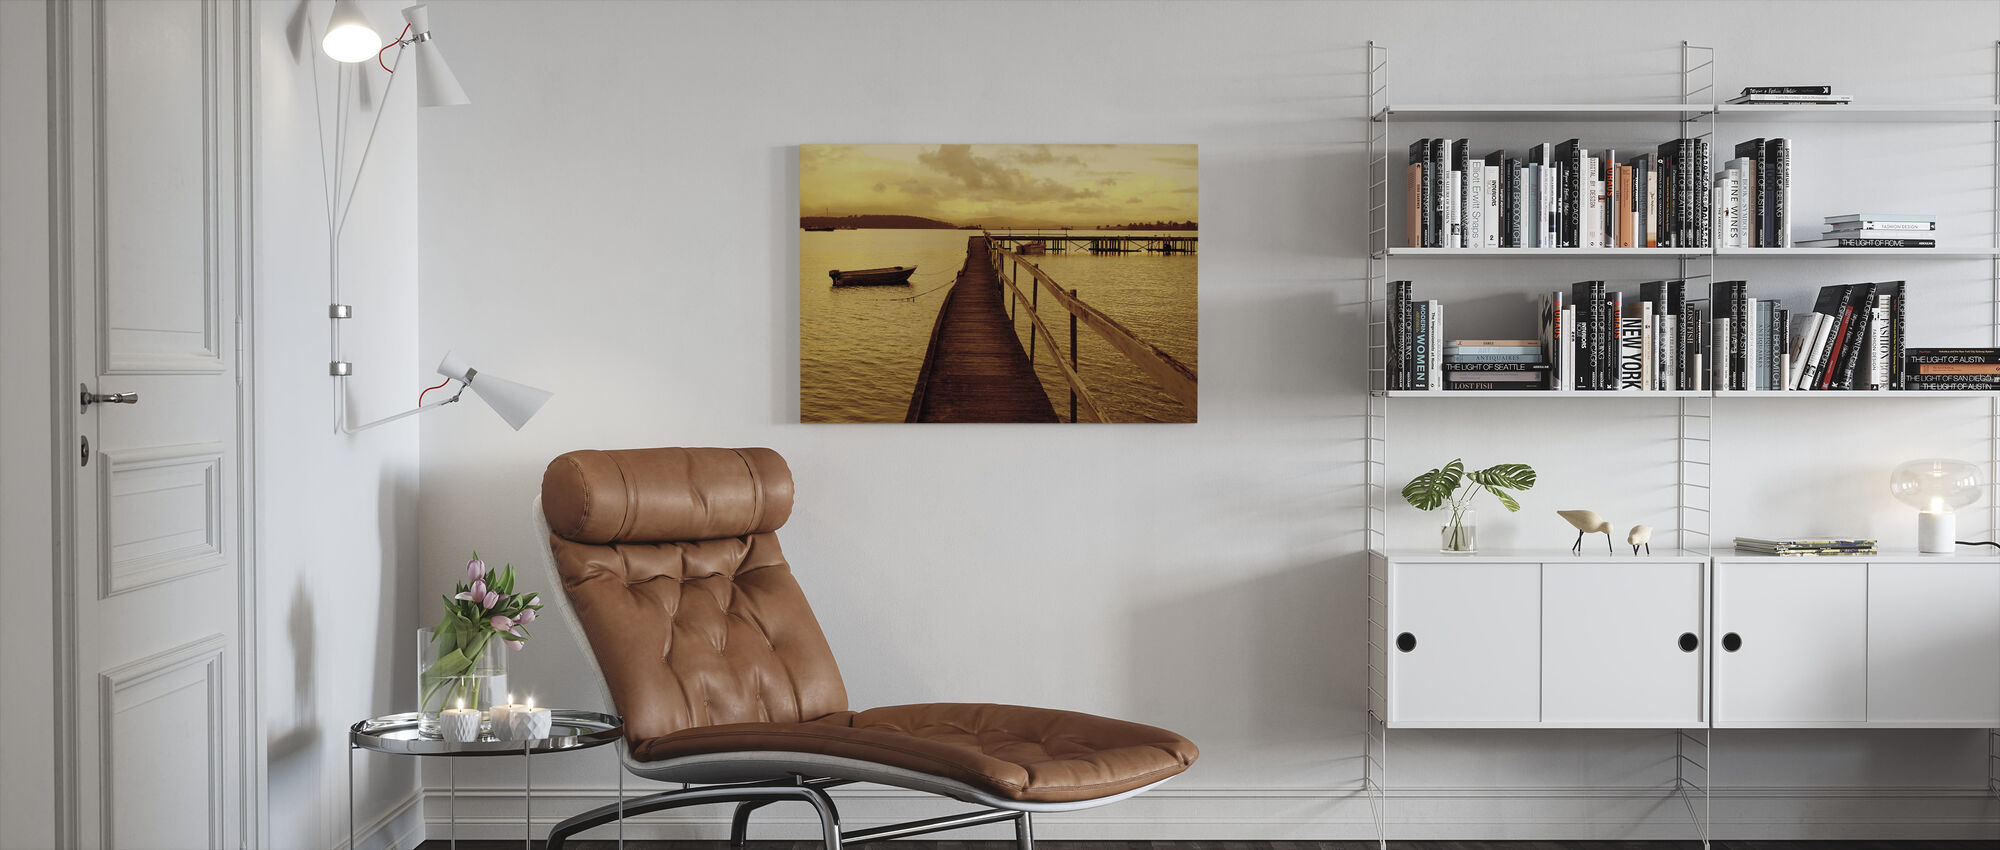 Art Of Waiting - Canvas print - Living Room